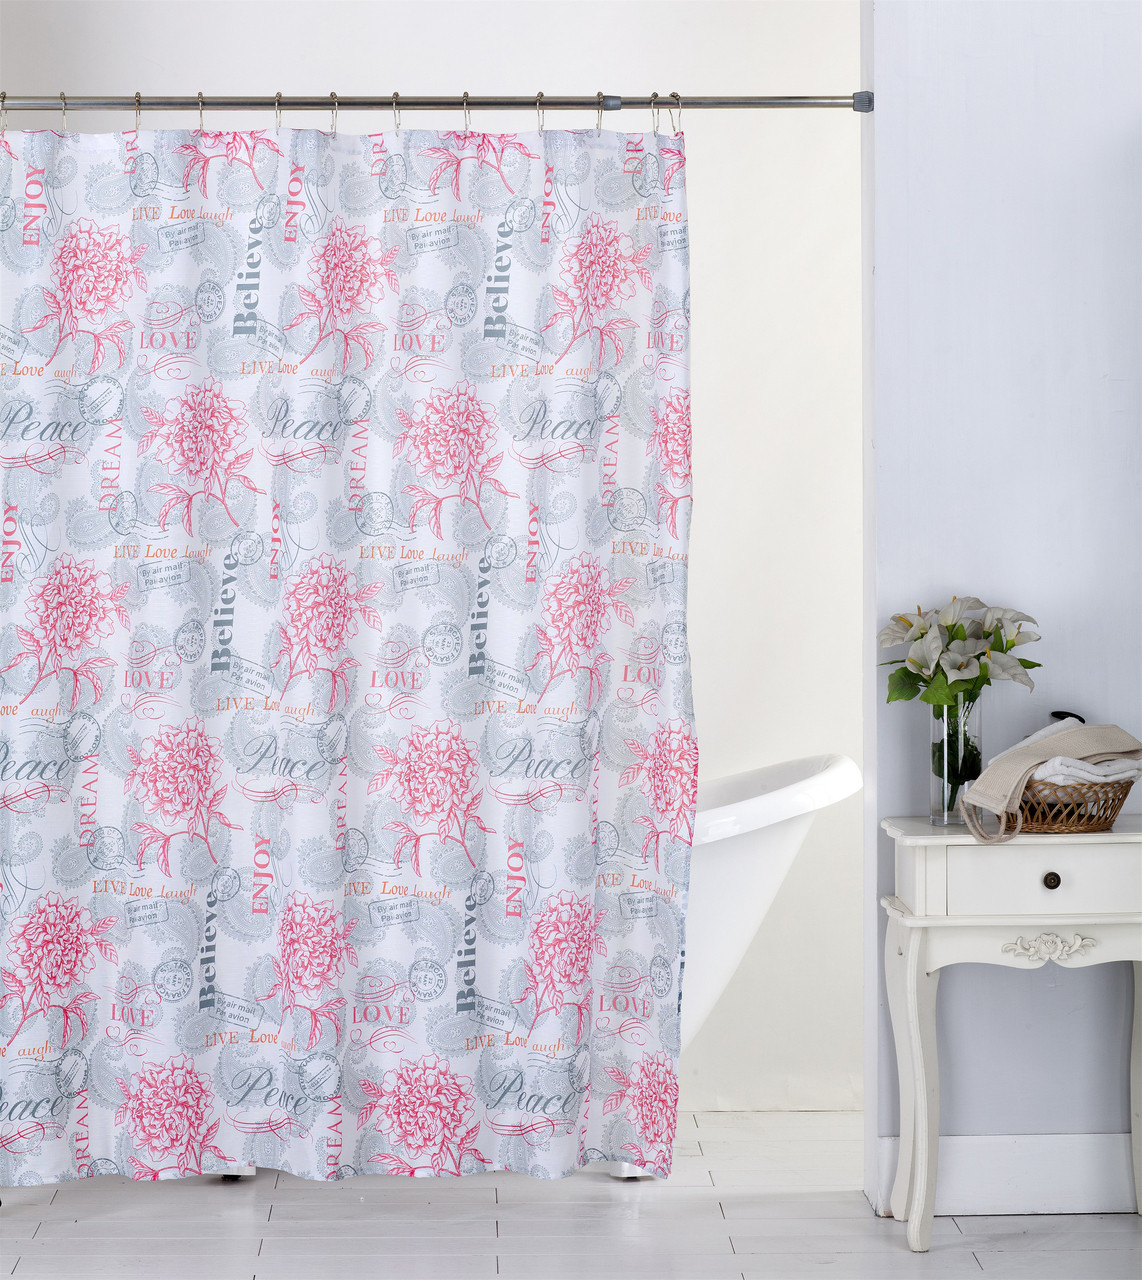 Hooks Bathroom Window Curtain Jenna 14pc Bath Set Canvas Shower Curtain